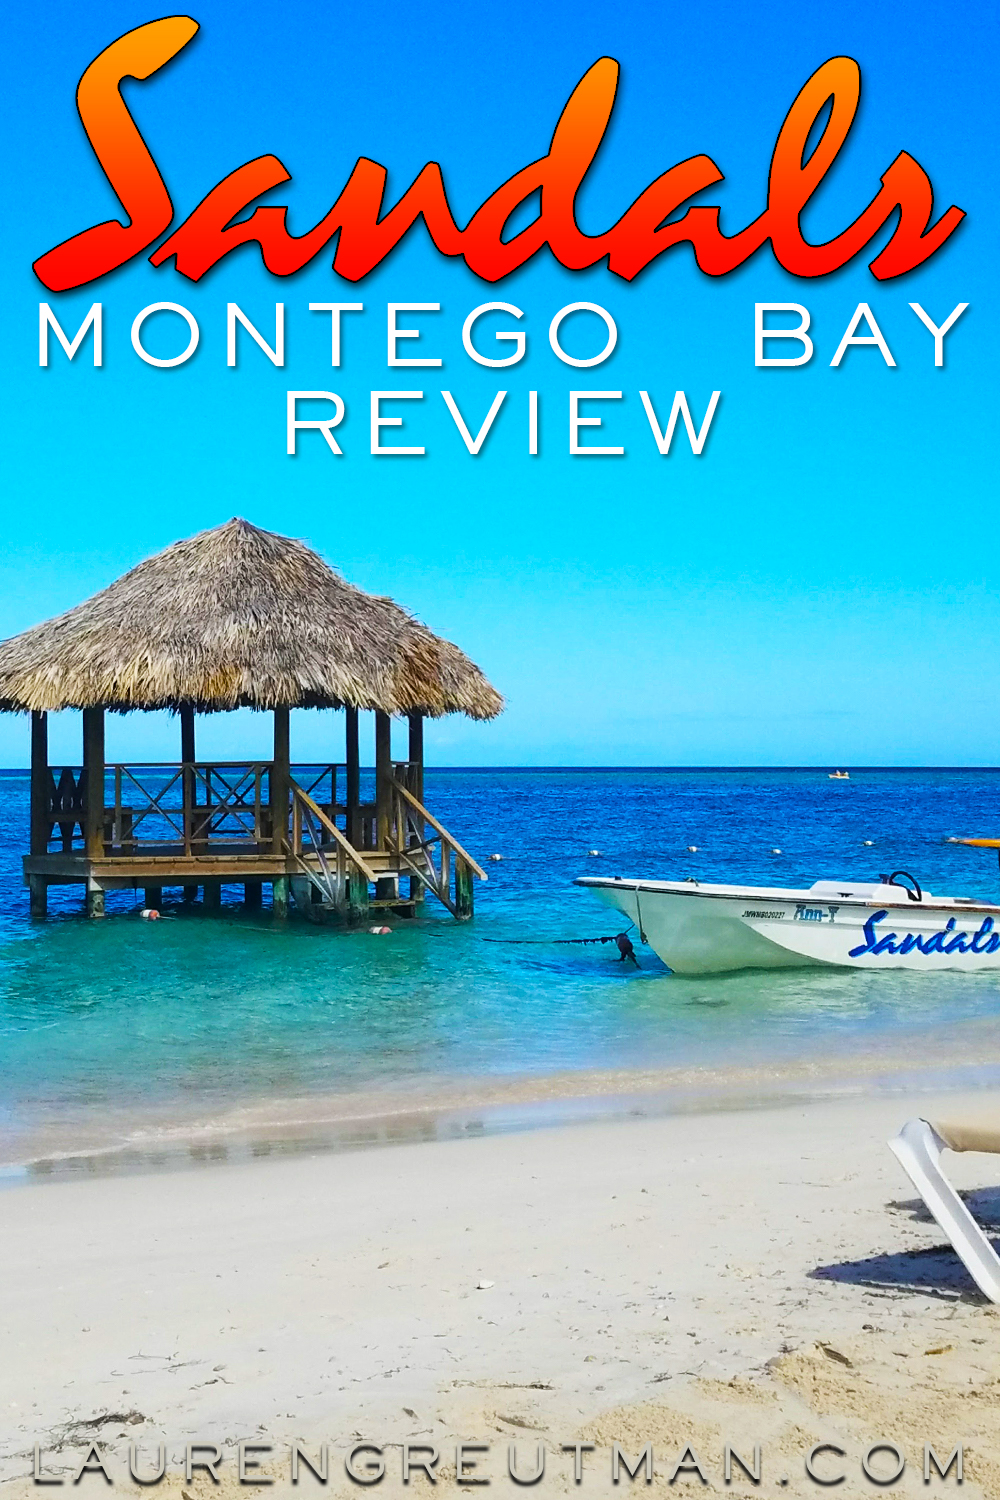 Wondering how to take a dream vacation on a budget? Check out Sandals in Montego Bay Jamaica - great for your budget!